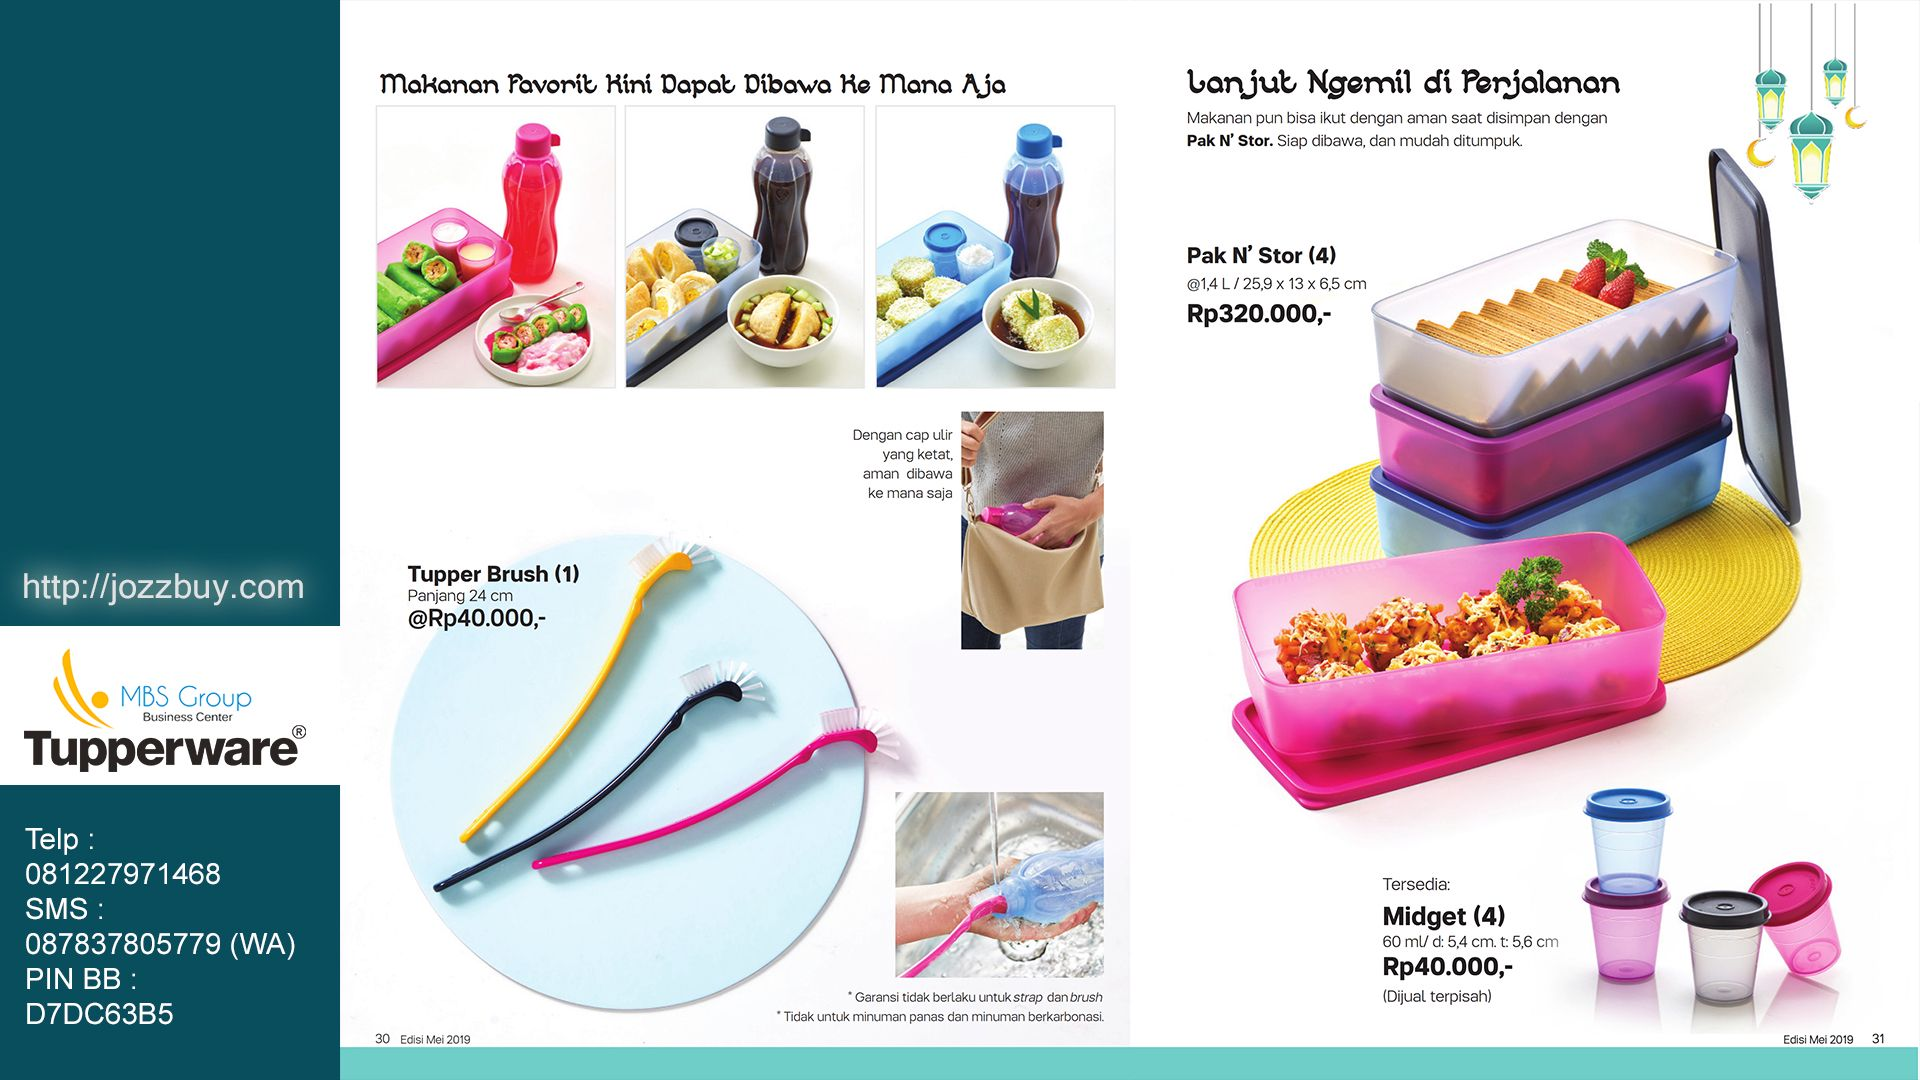 Harga Promo Tupperware September 2019